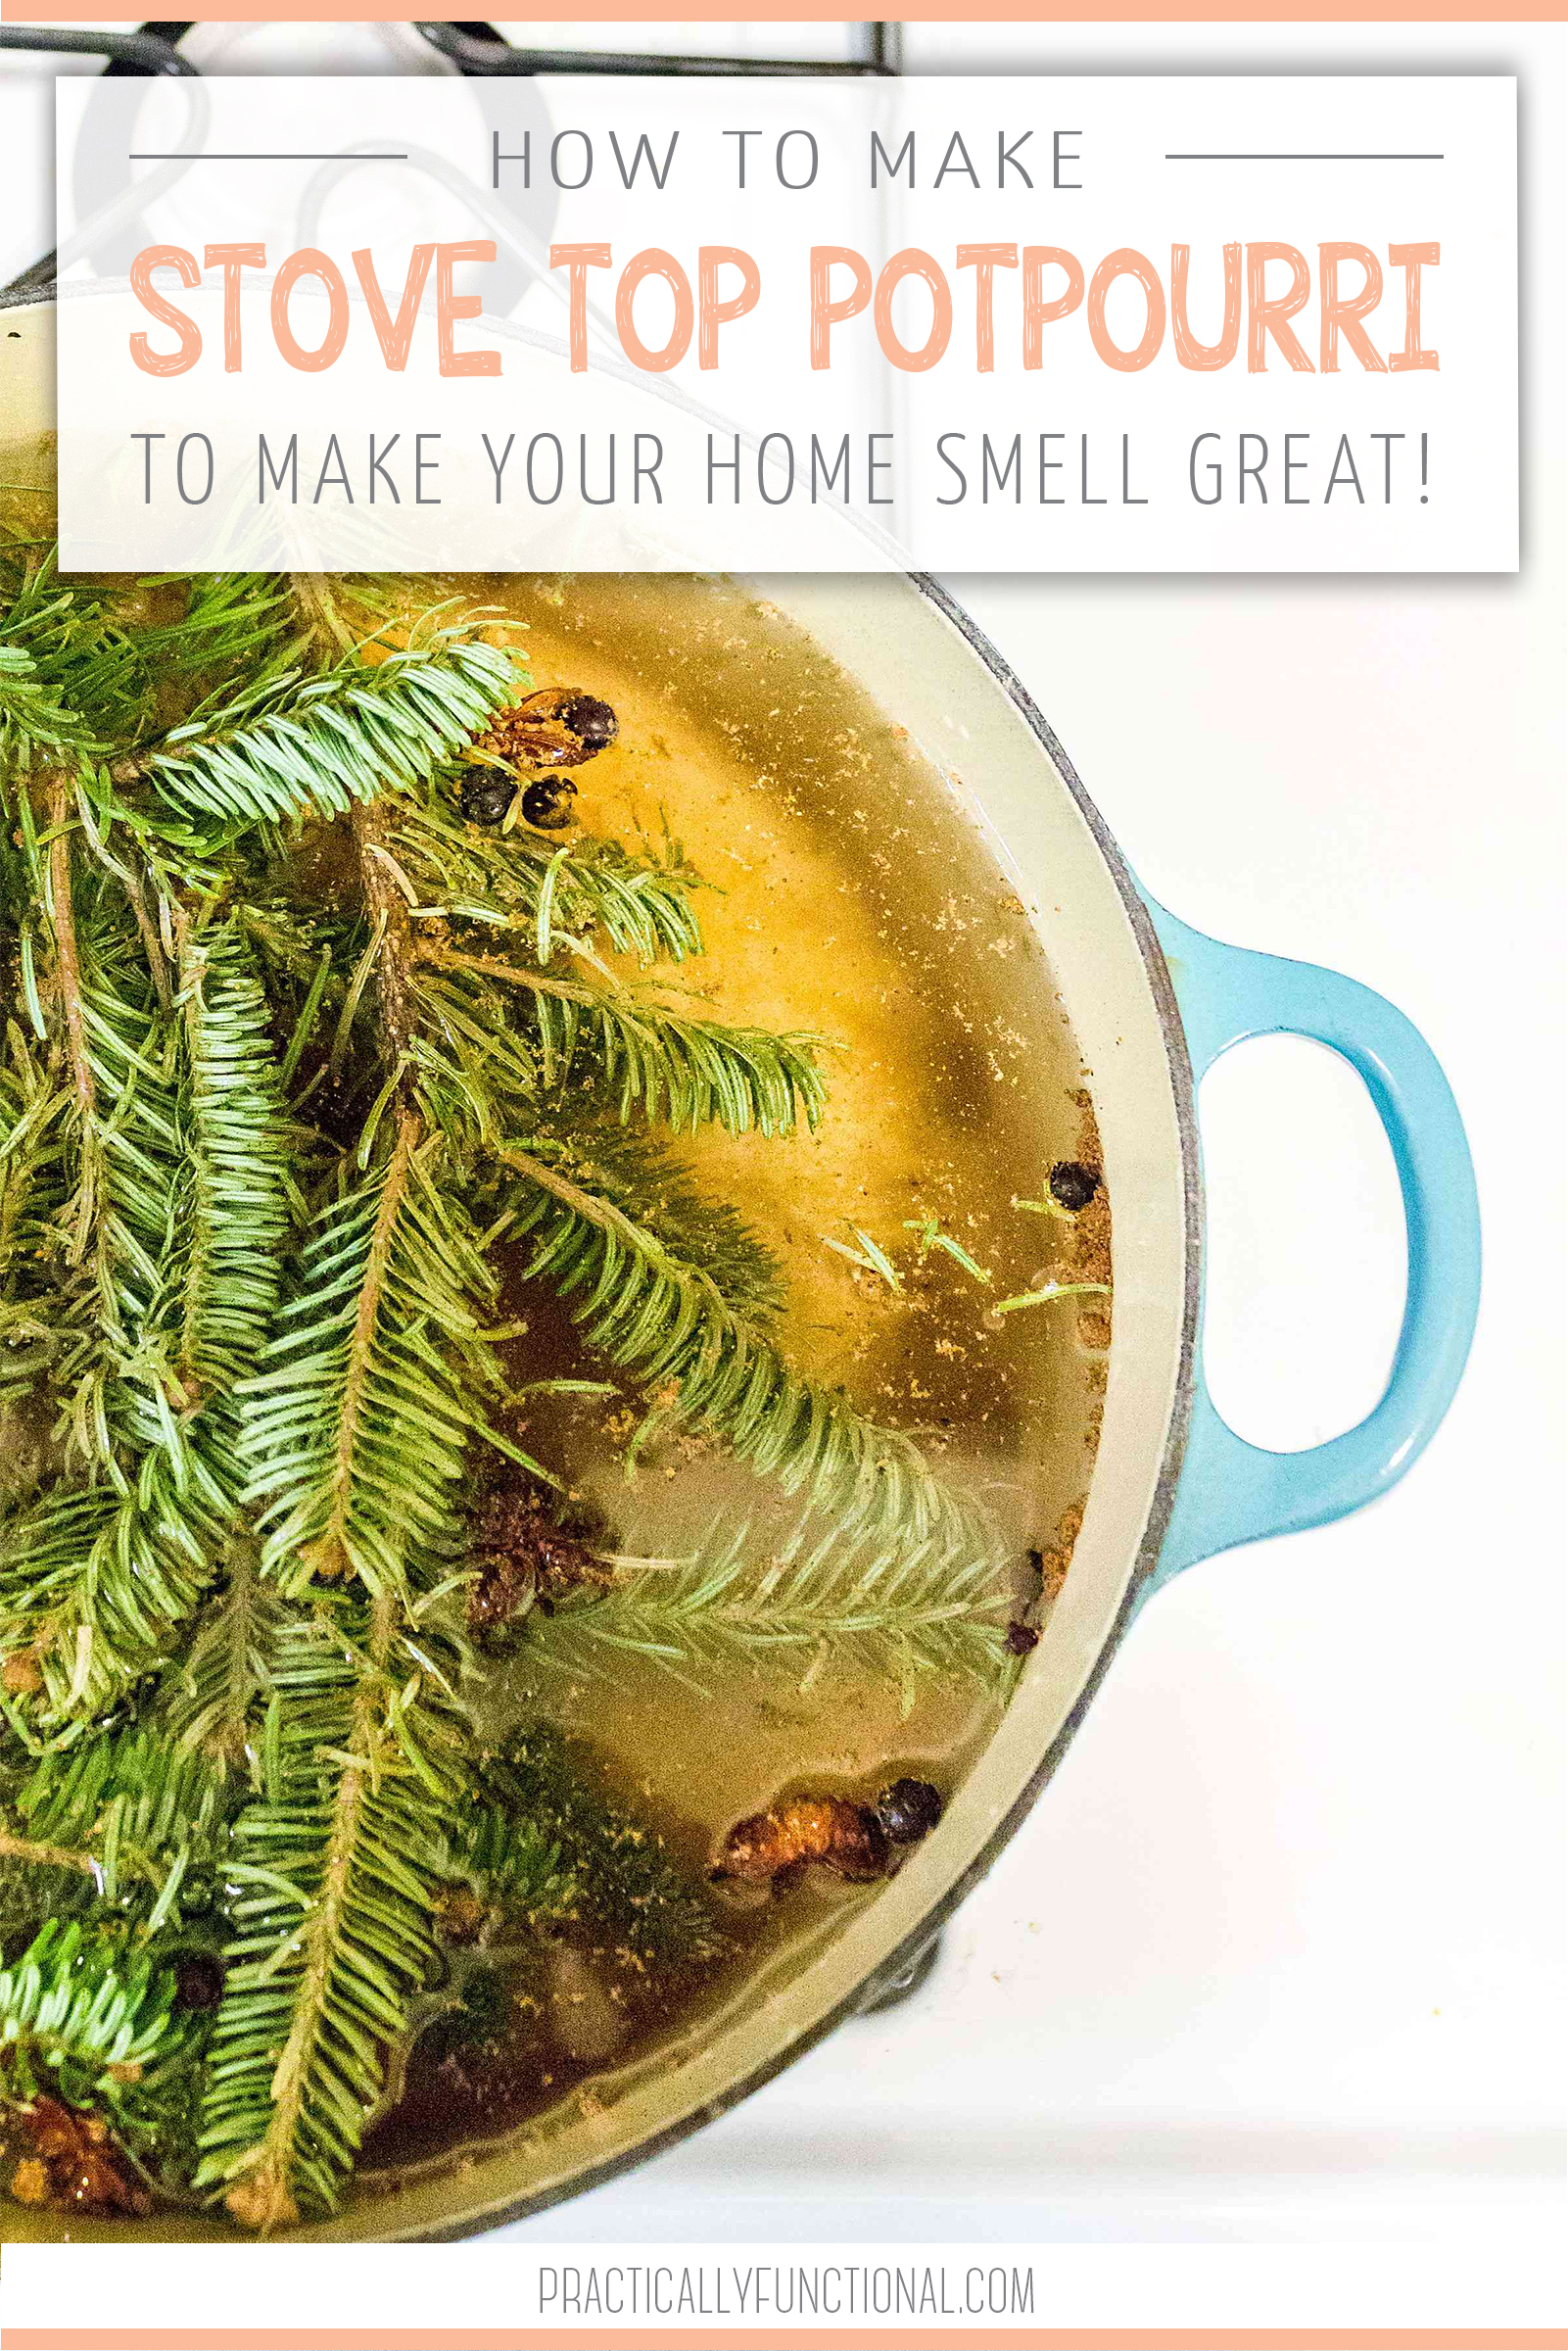 I love having a simmer pot in my home for the holidays it makes everything smell amazing! 3 great simmer pot recipes here!